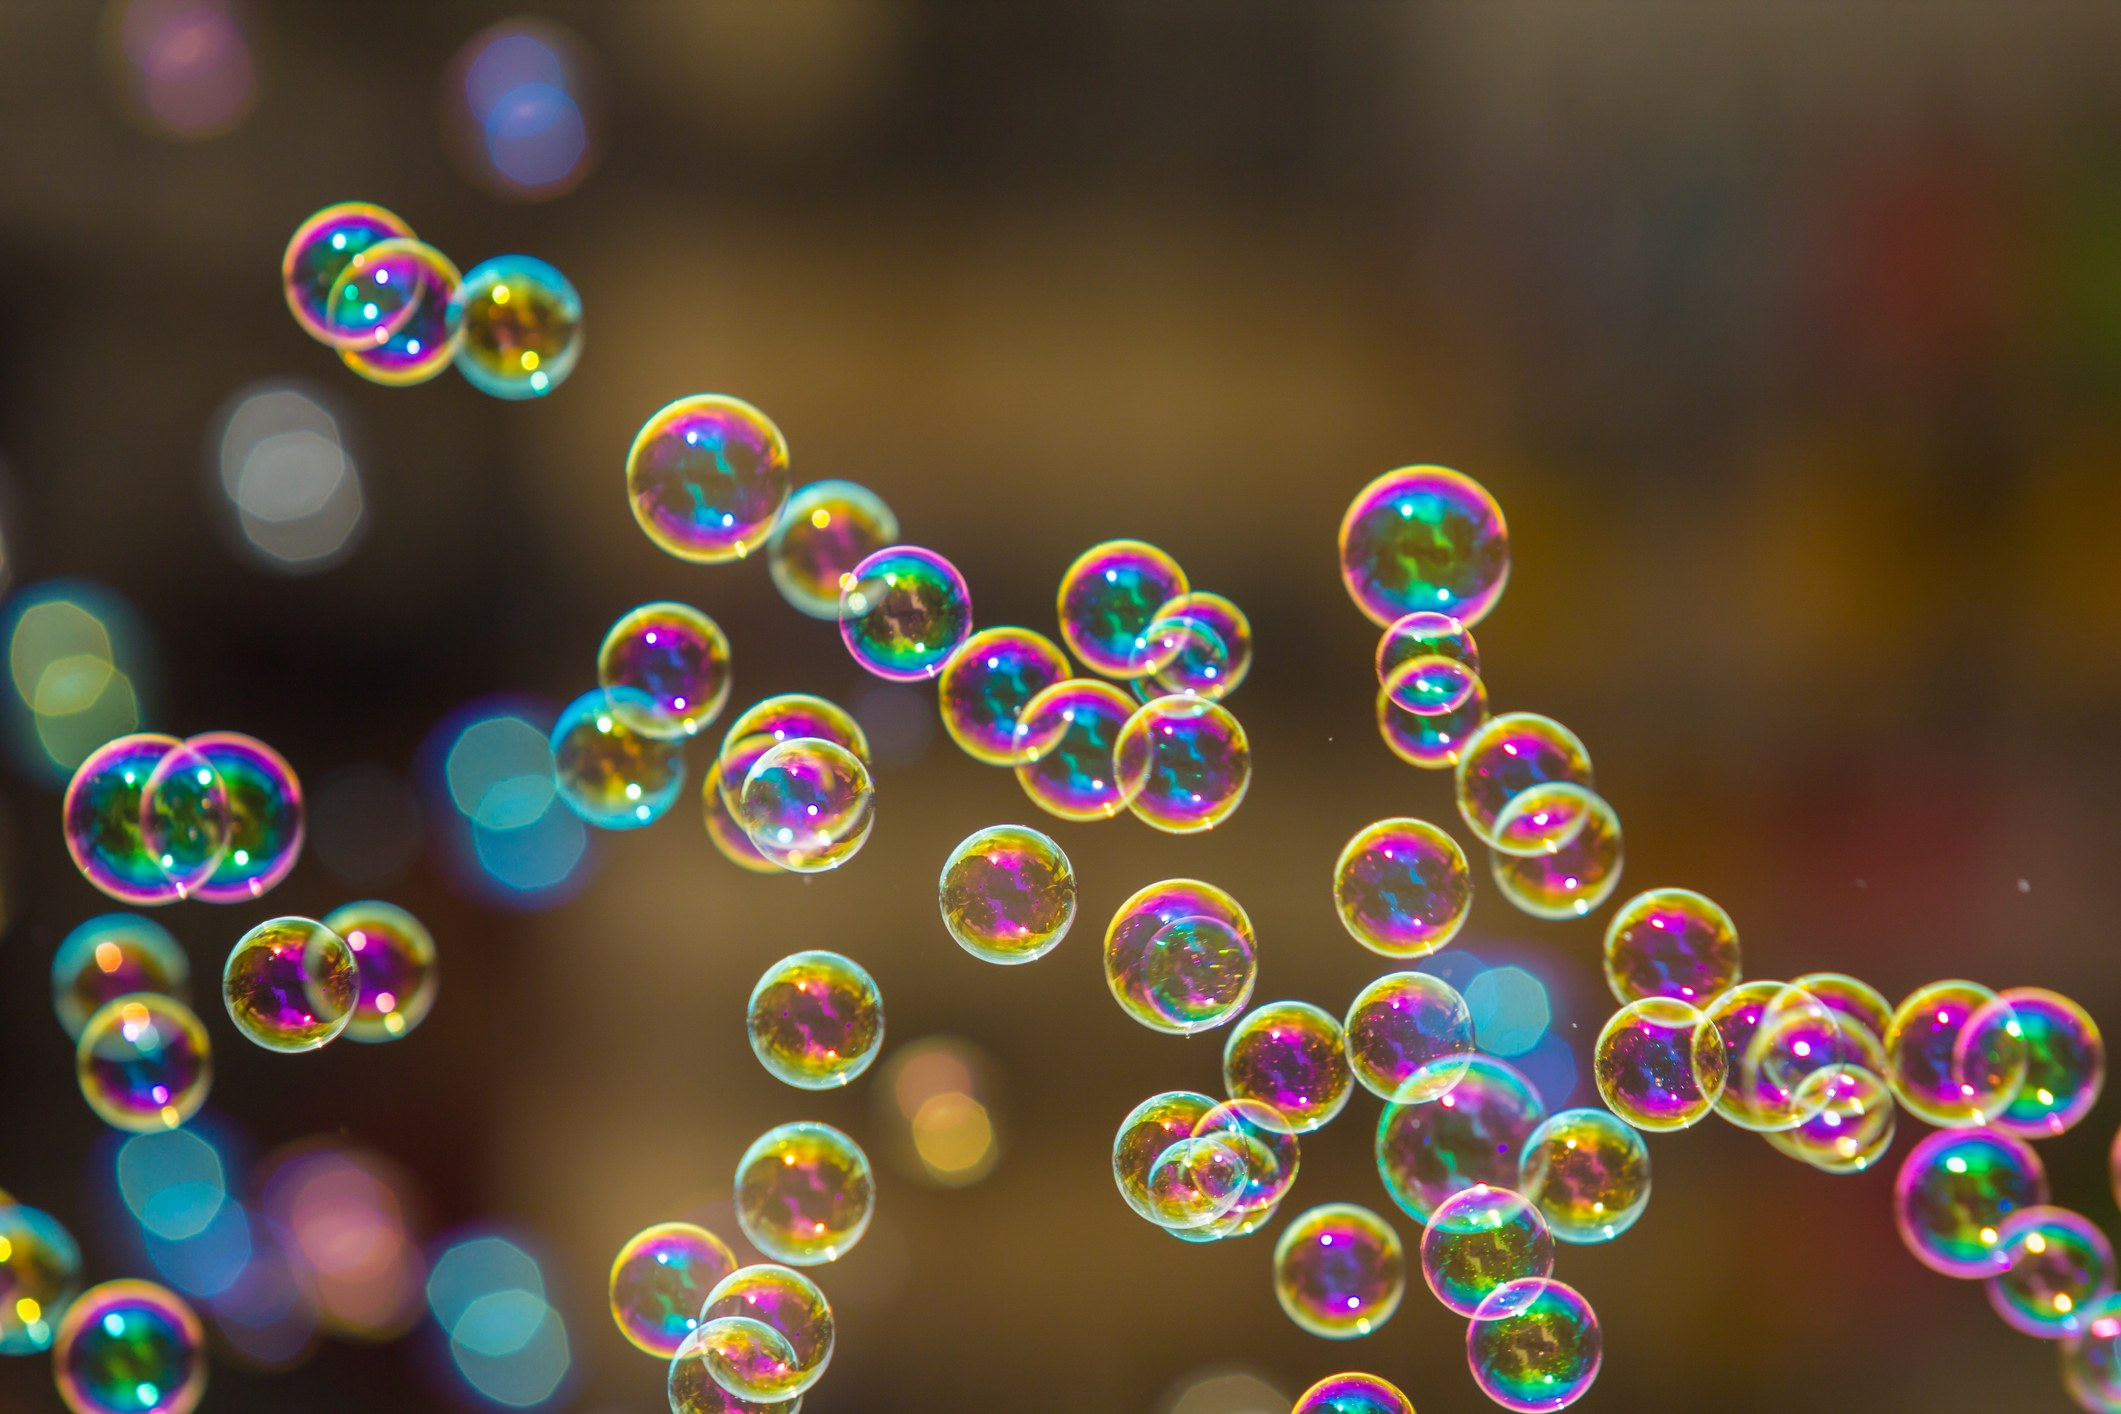 The rainbow soap bubbles from the bubble blower.